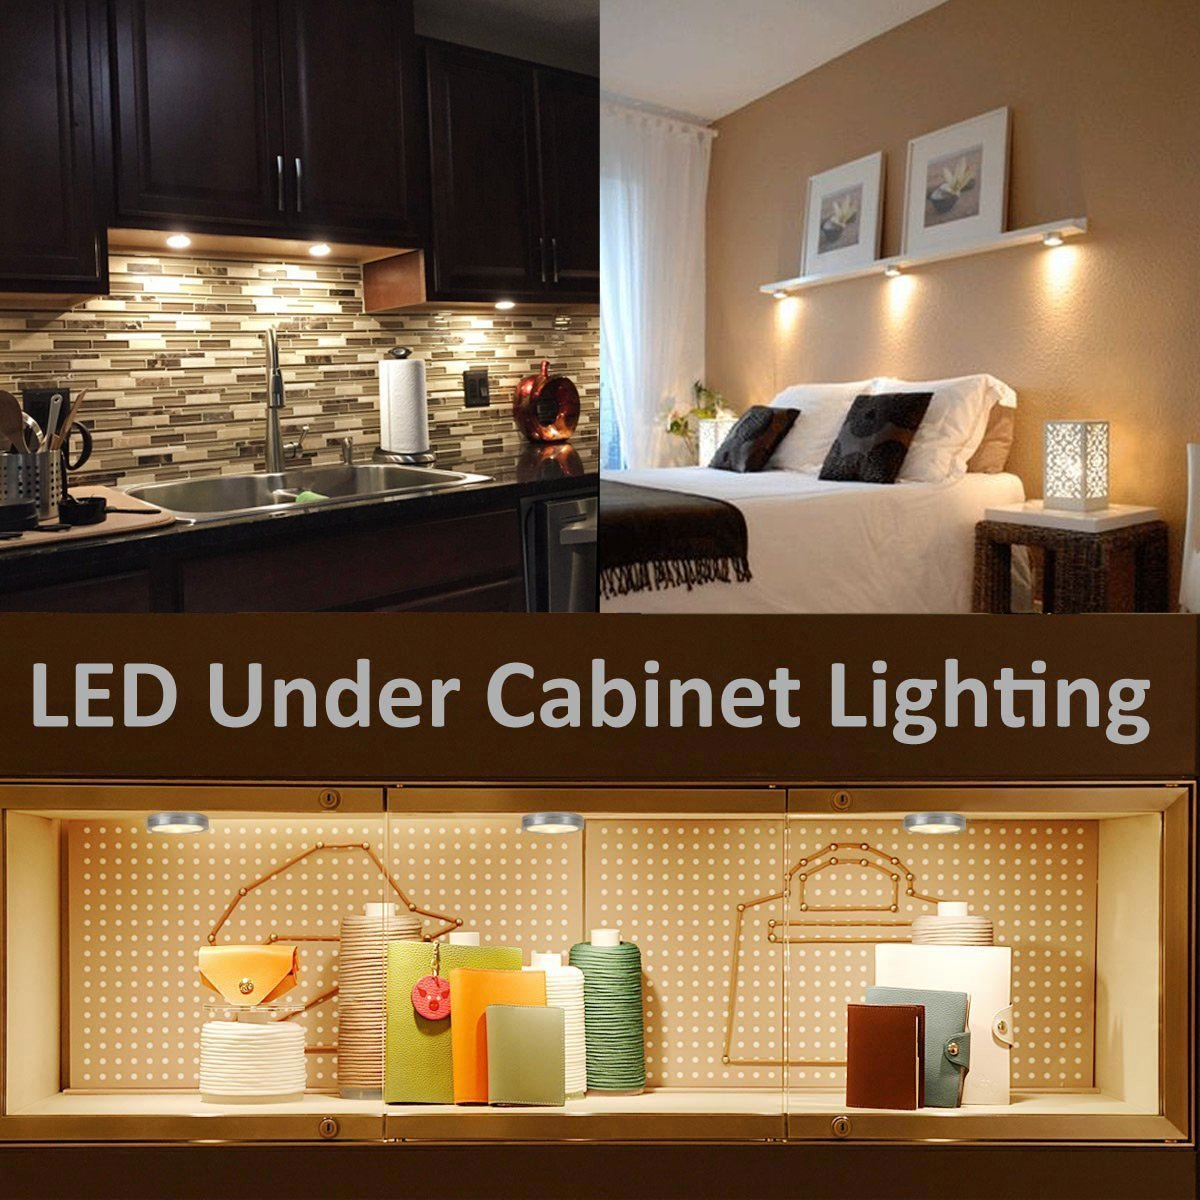 LE 5 Pack LED Under Cabinet Lighting Brightest Puck Lights 12V DC Under Counter Lighting 25W Halogen Replacement 240lm Warm White - - Amazon.com & LE 5 Pack LED Under Cabinet Lighting Brightest Puck Lights 12V ... azcodes.com